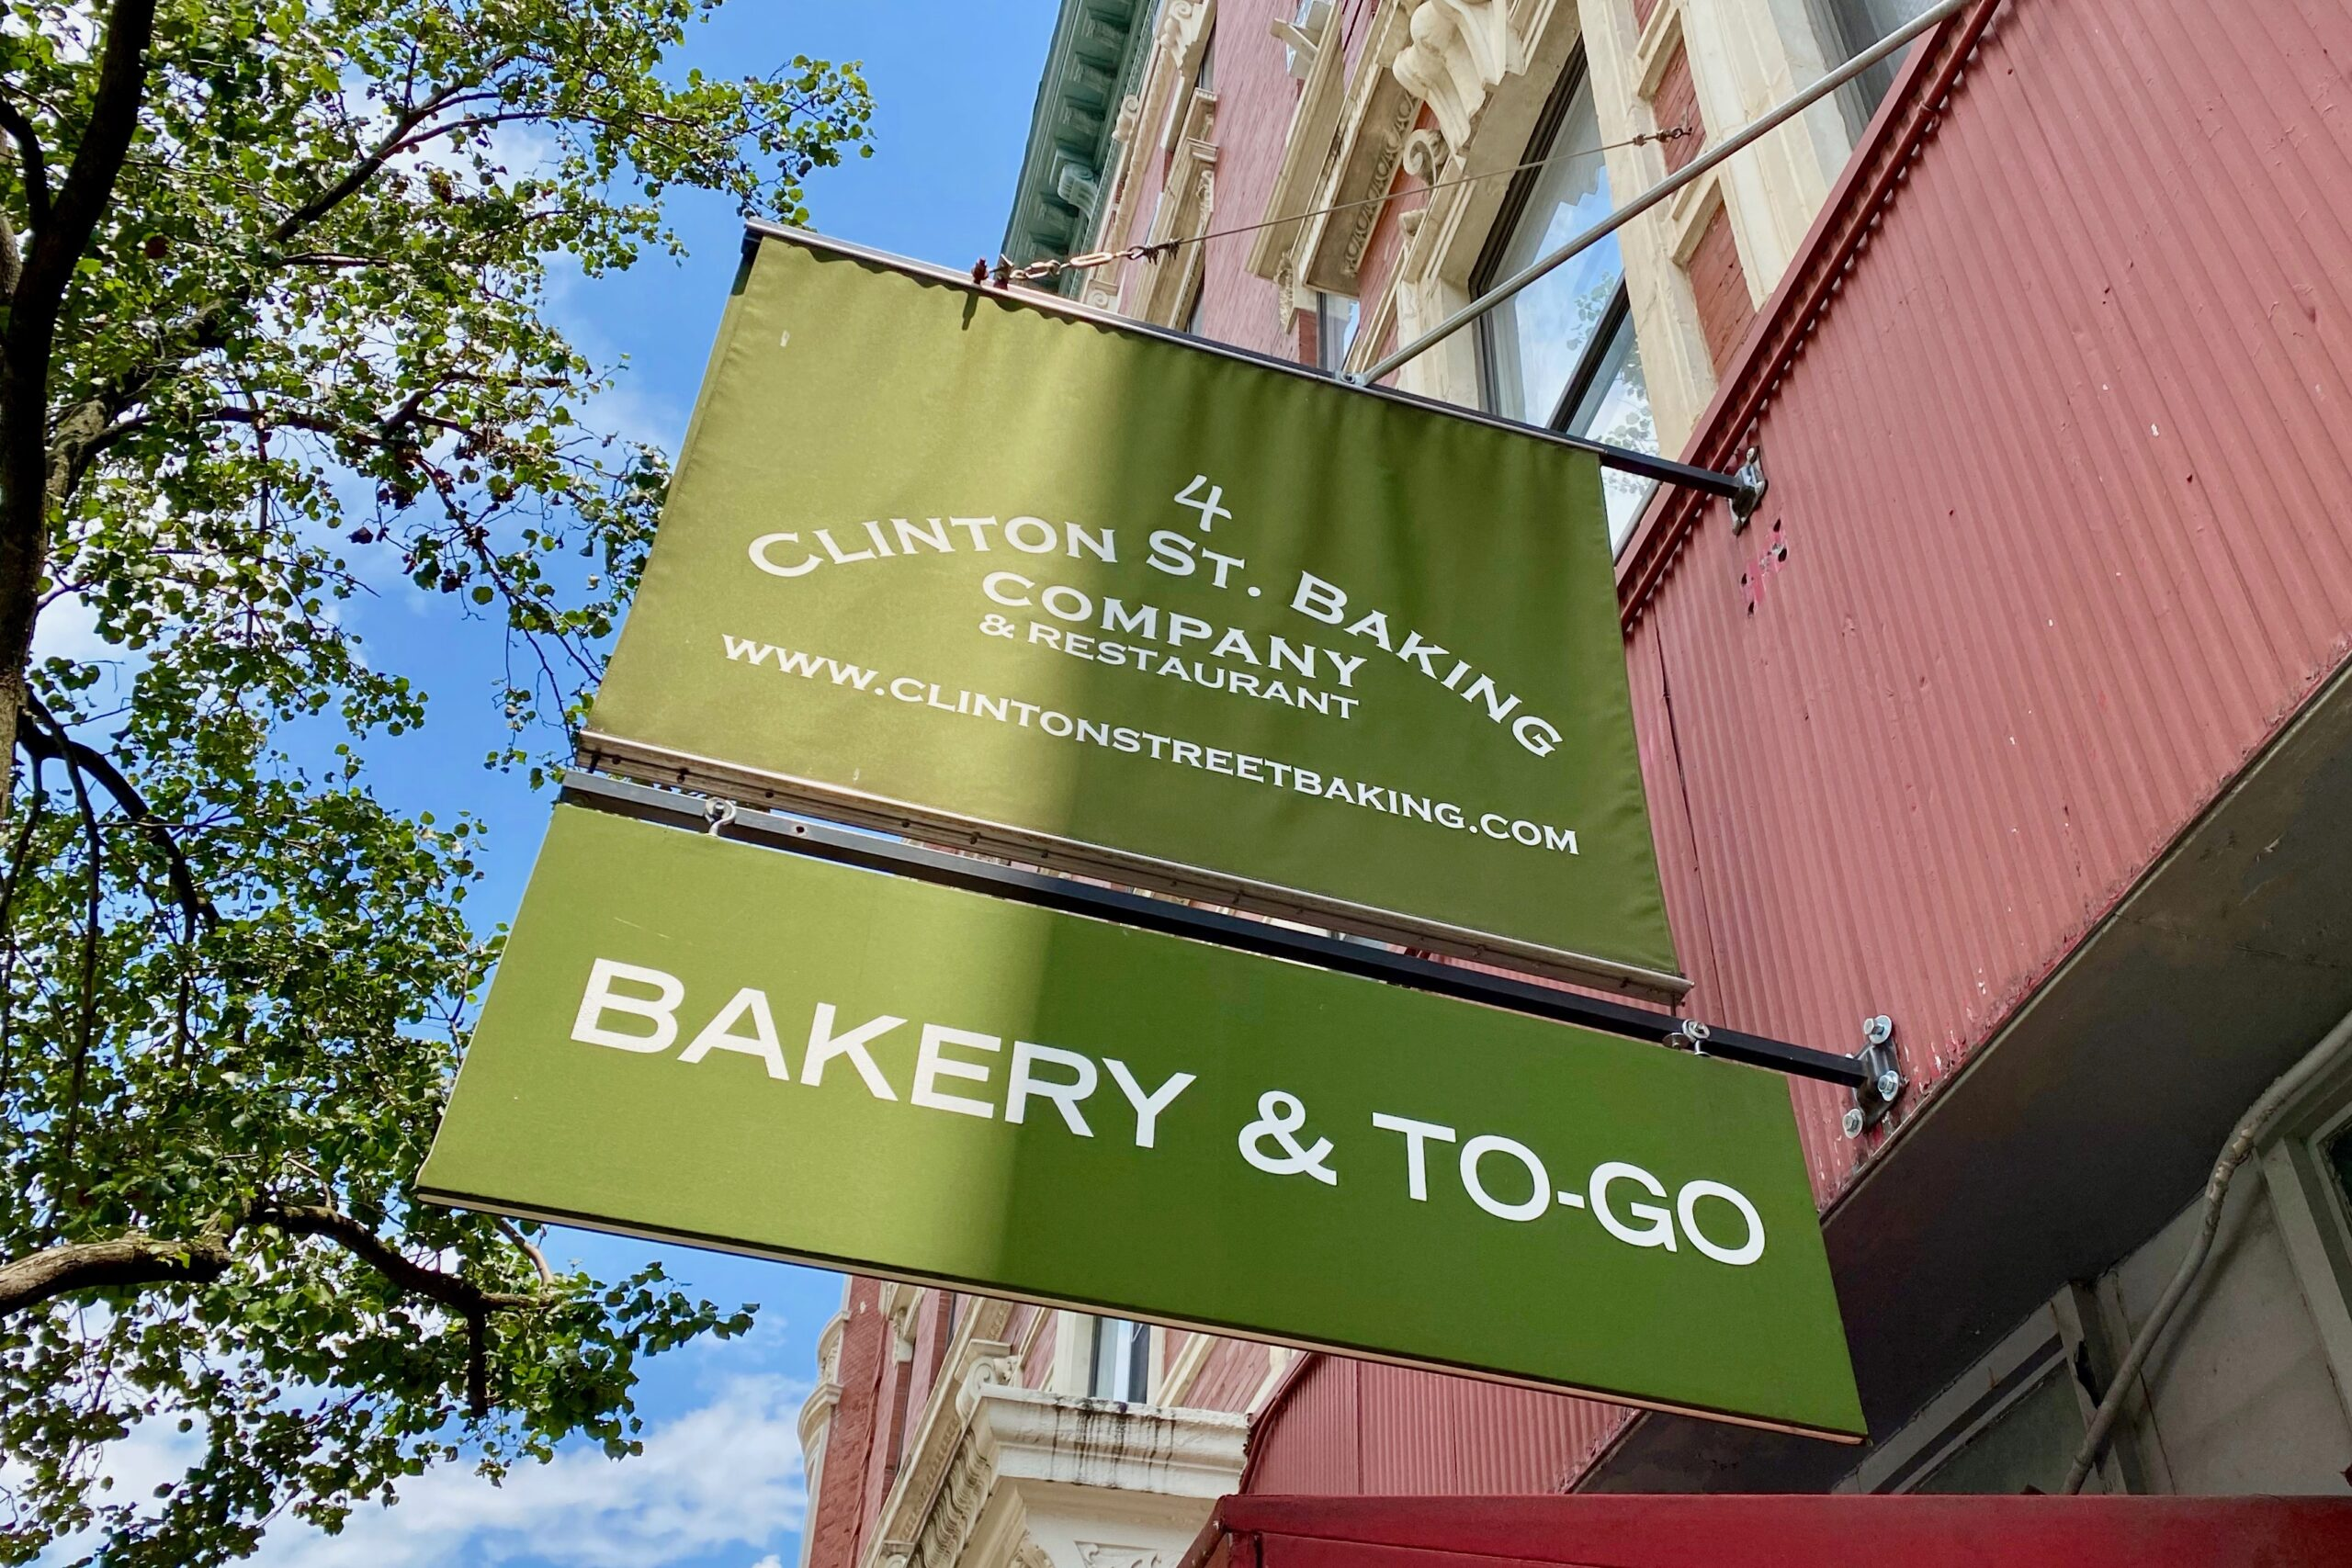 clinton street baking company sign in nyc